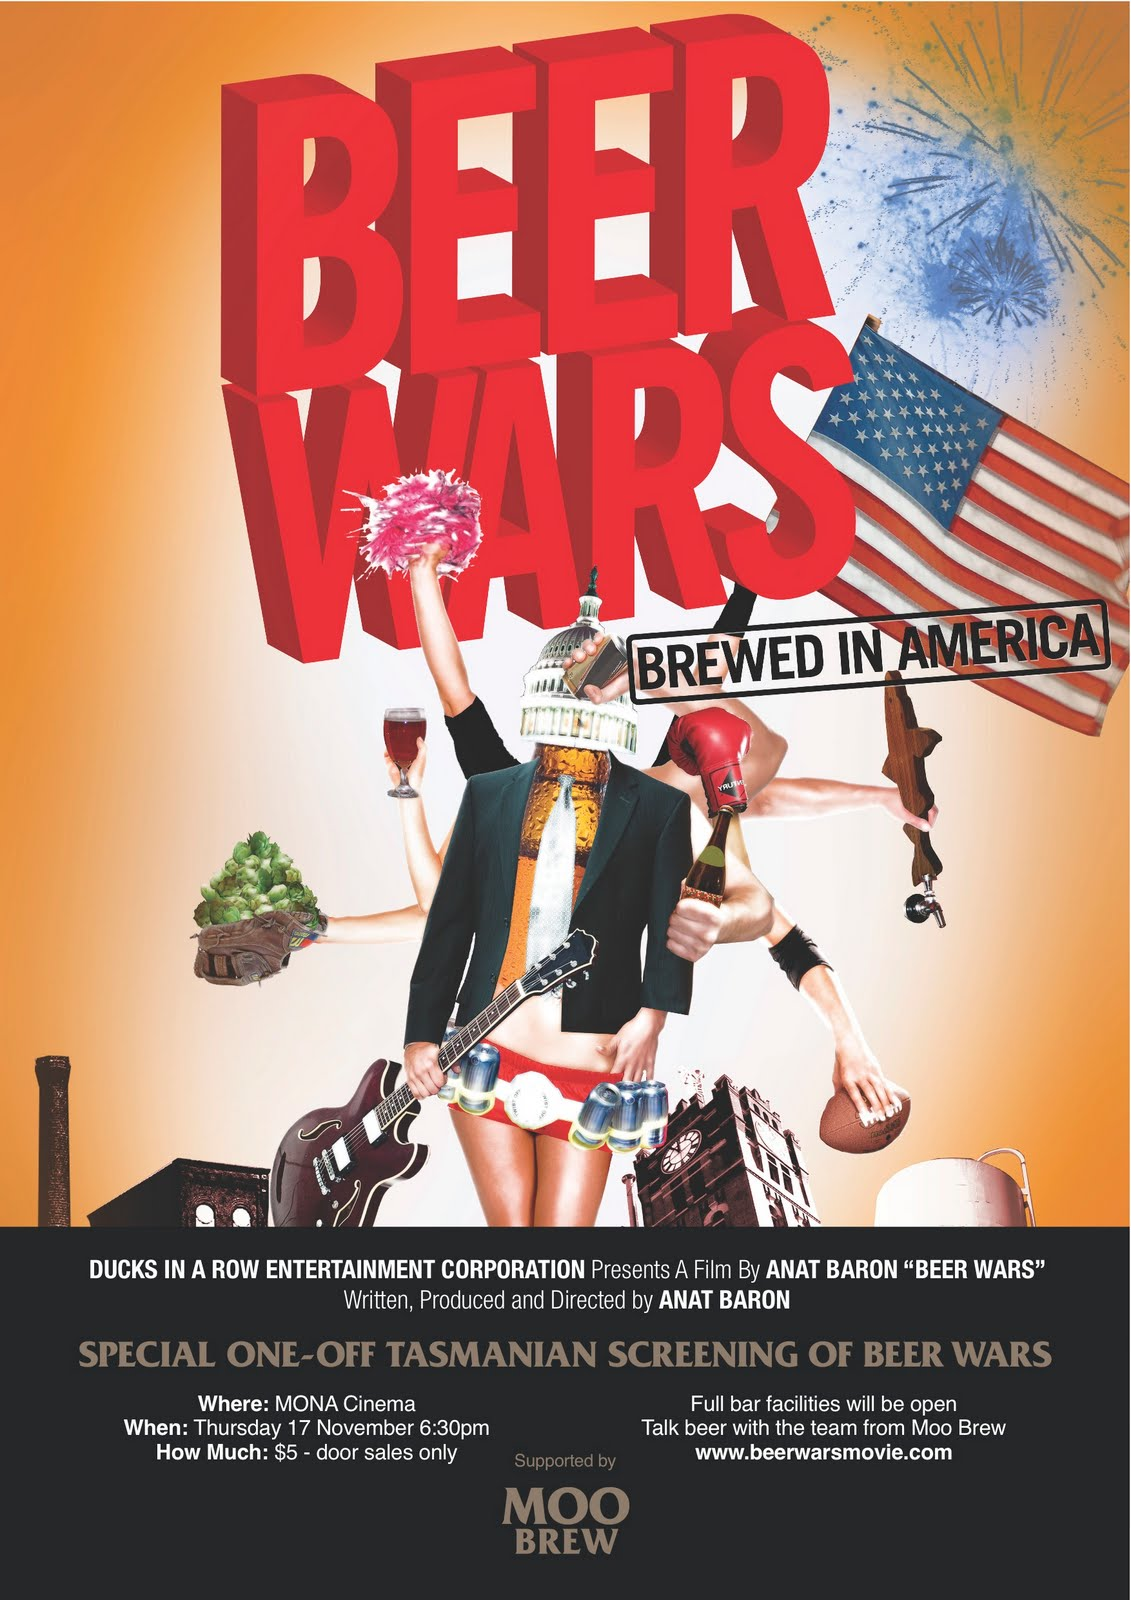 beer wars documentary review essay